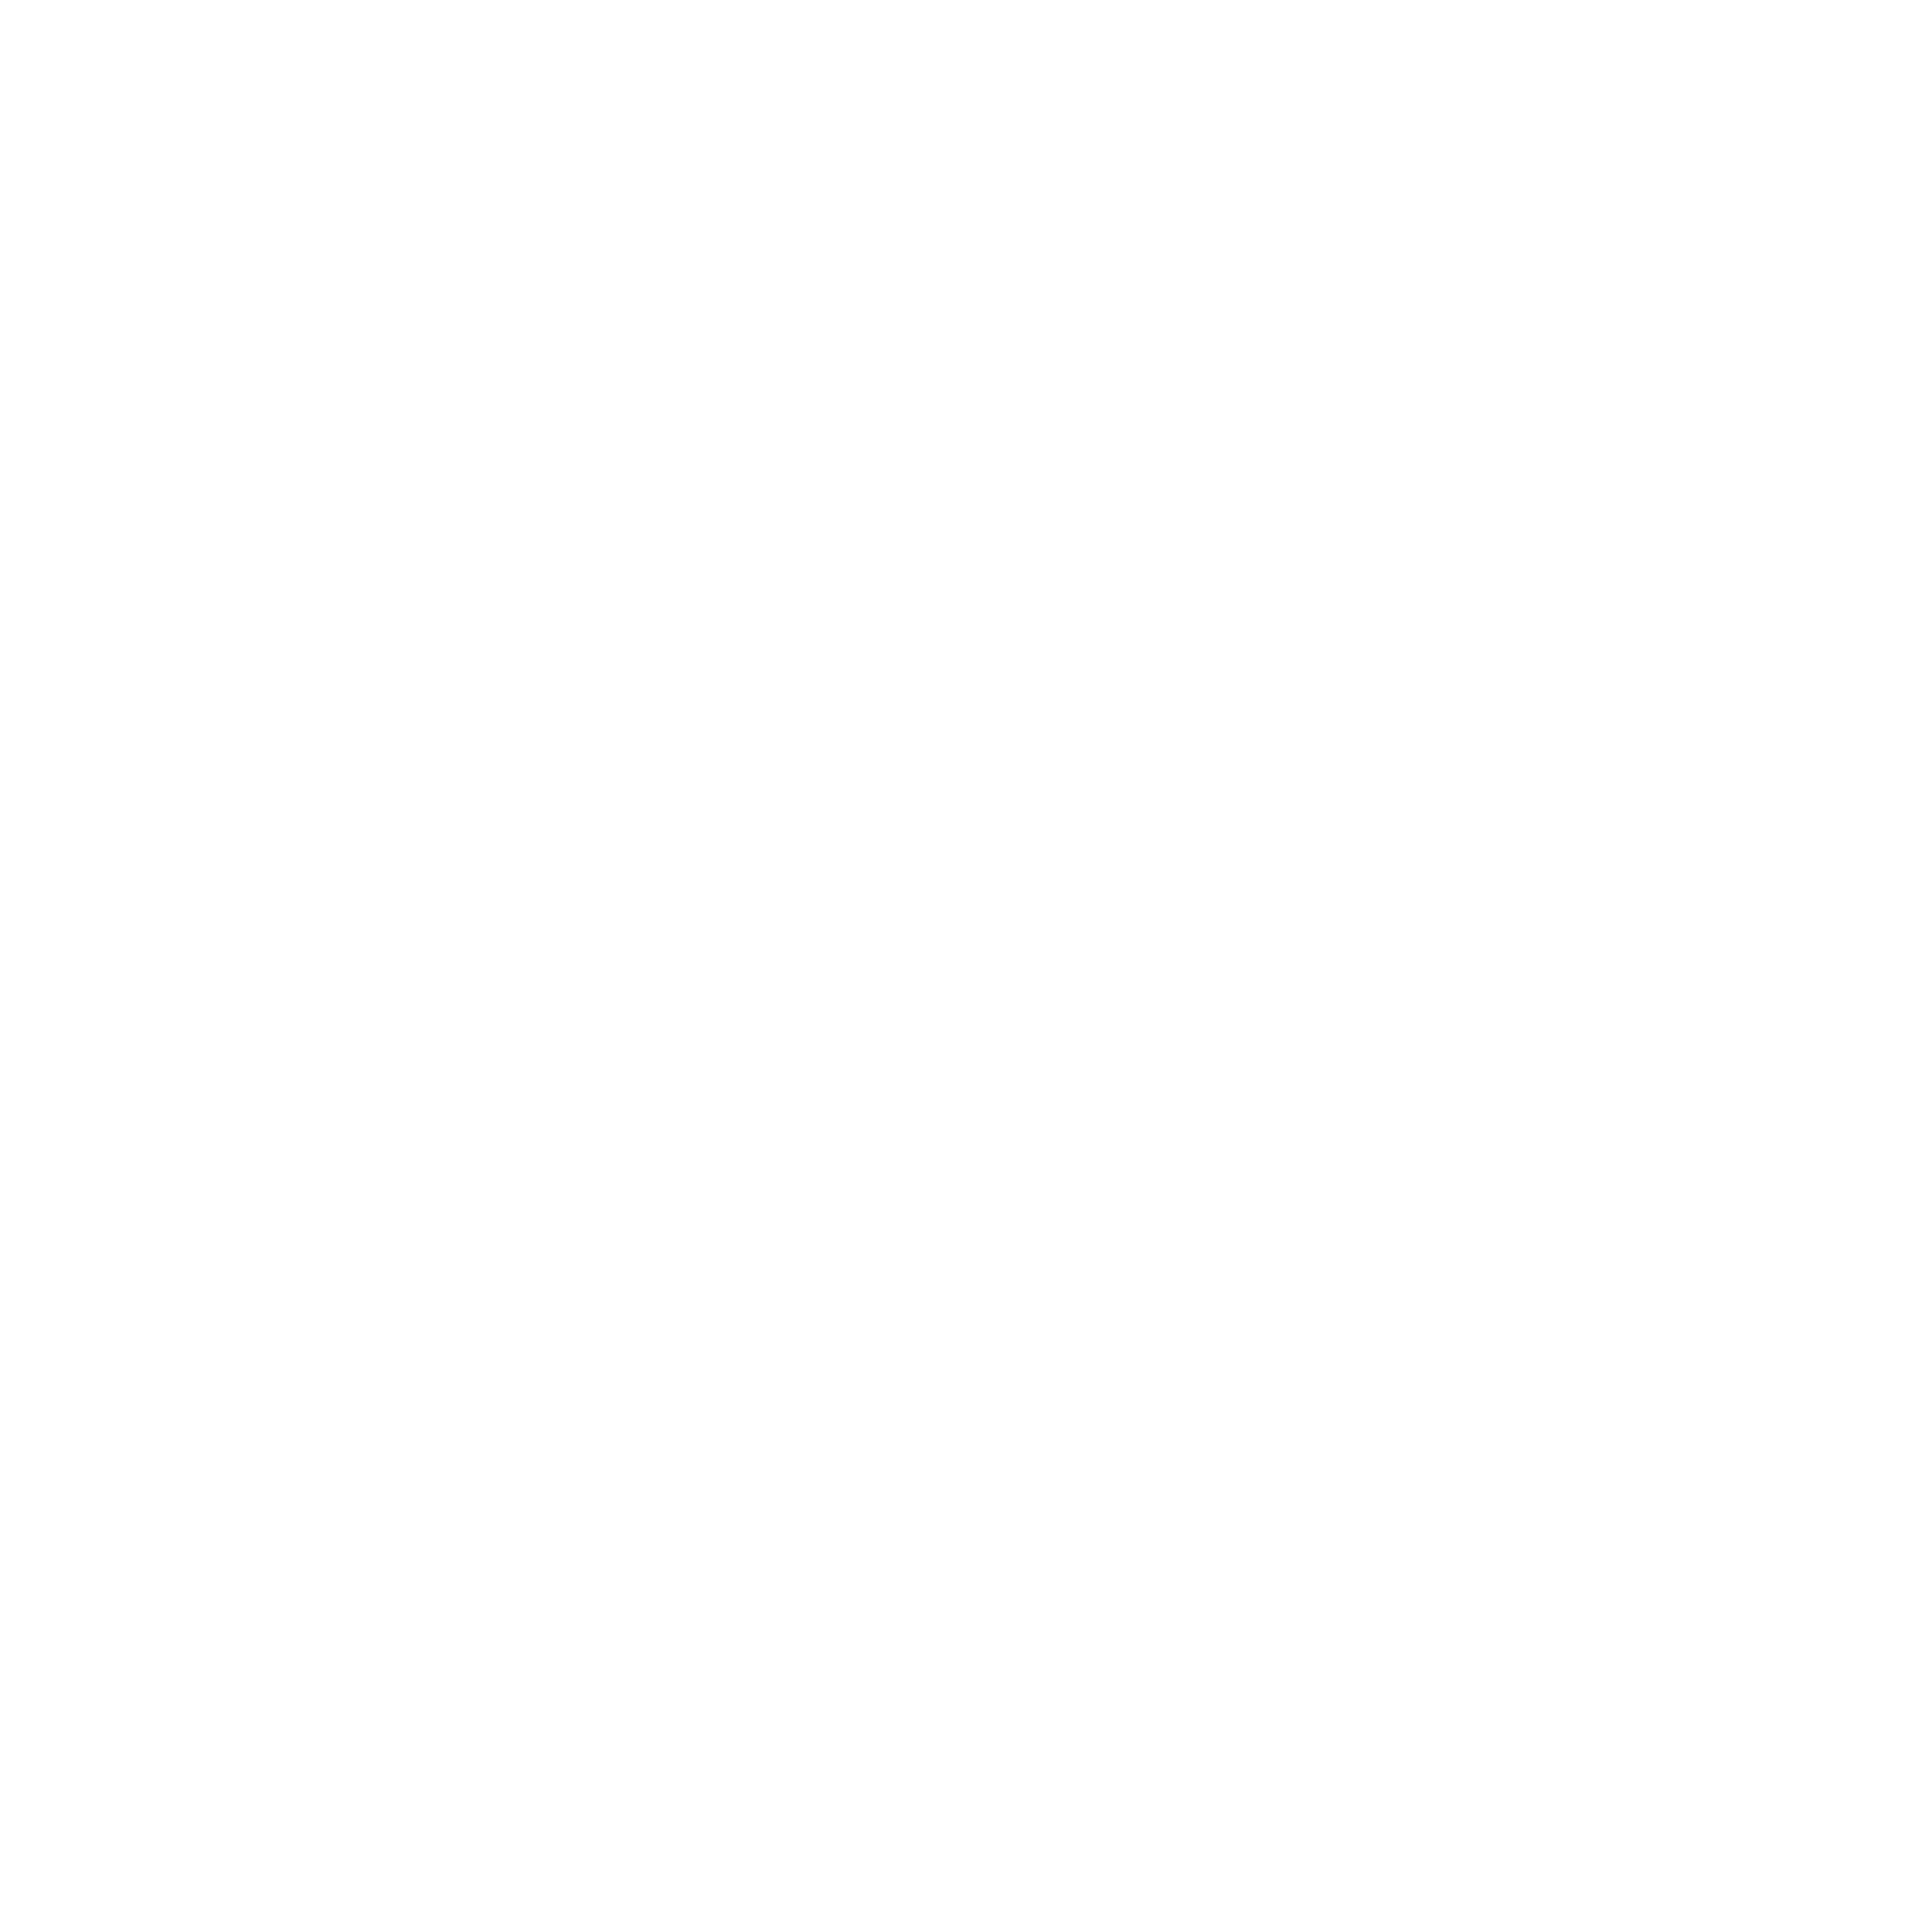 The Original Colorado Springs Food Tour